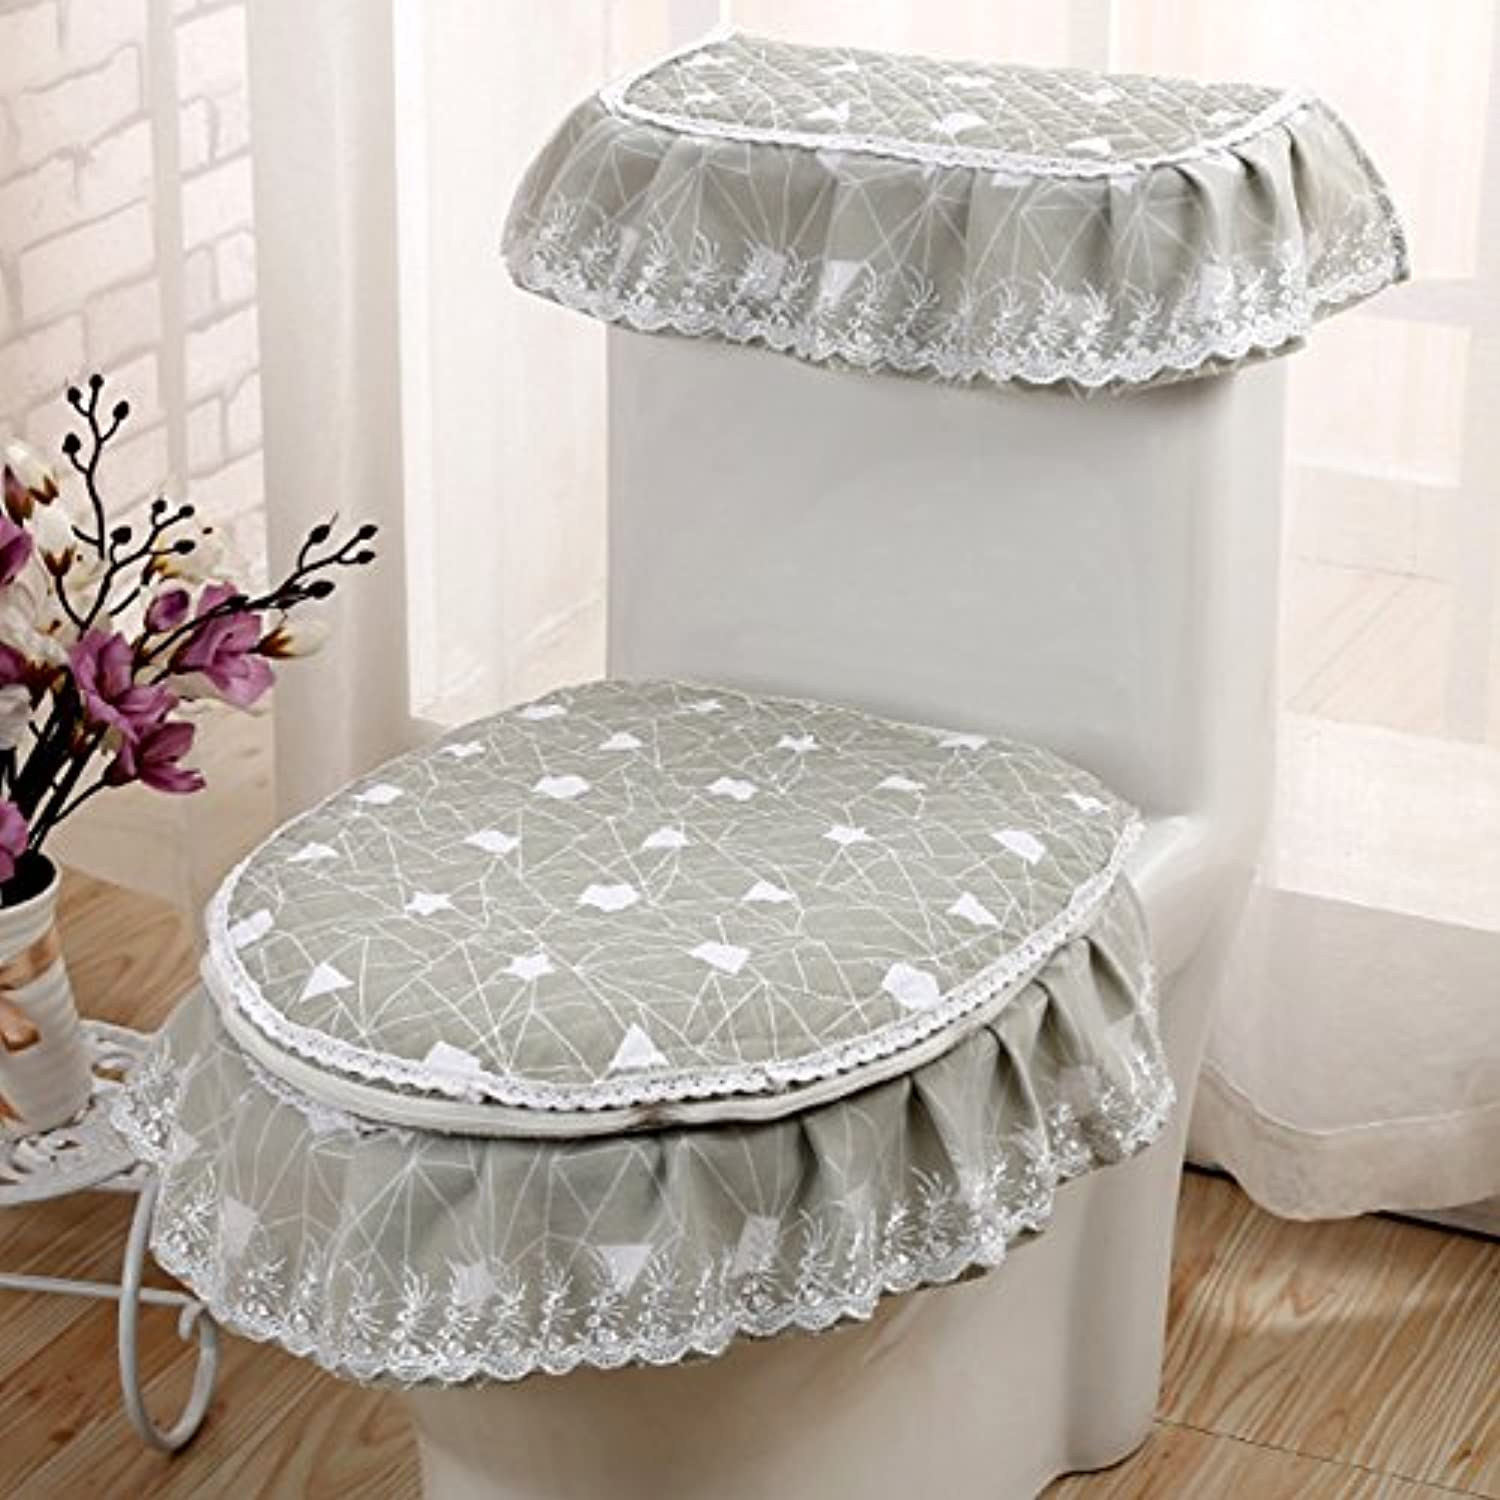 MKSFY Toilet Seat Cover European-Style Lace 3-Piece Household Universal Zipper Ring Winter Waterproof, bluee